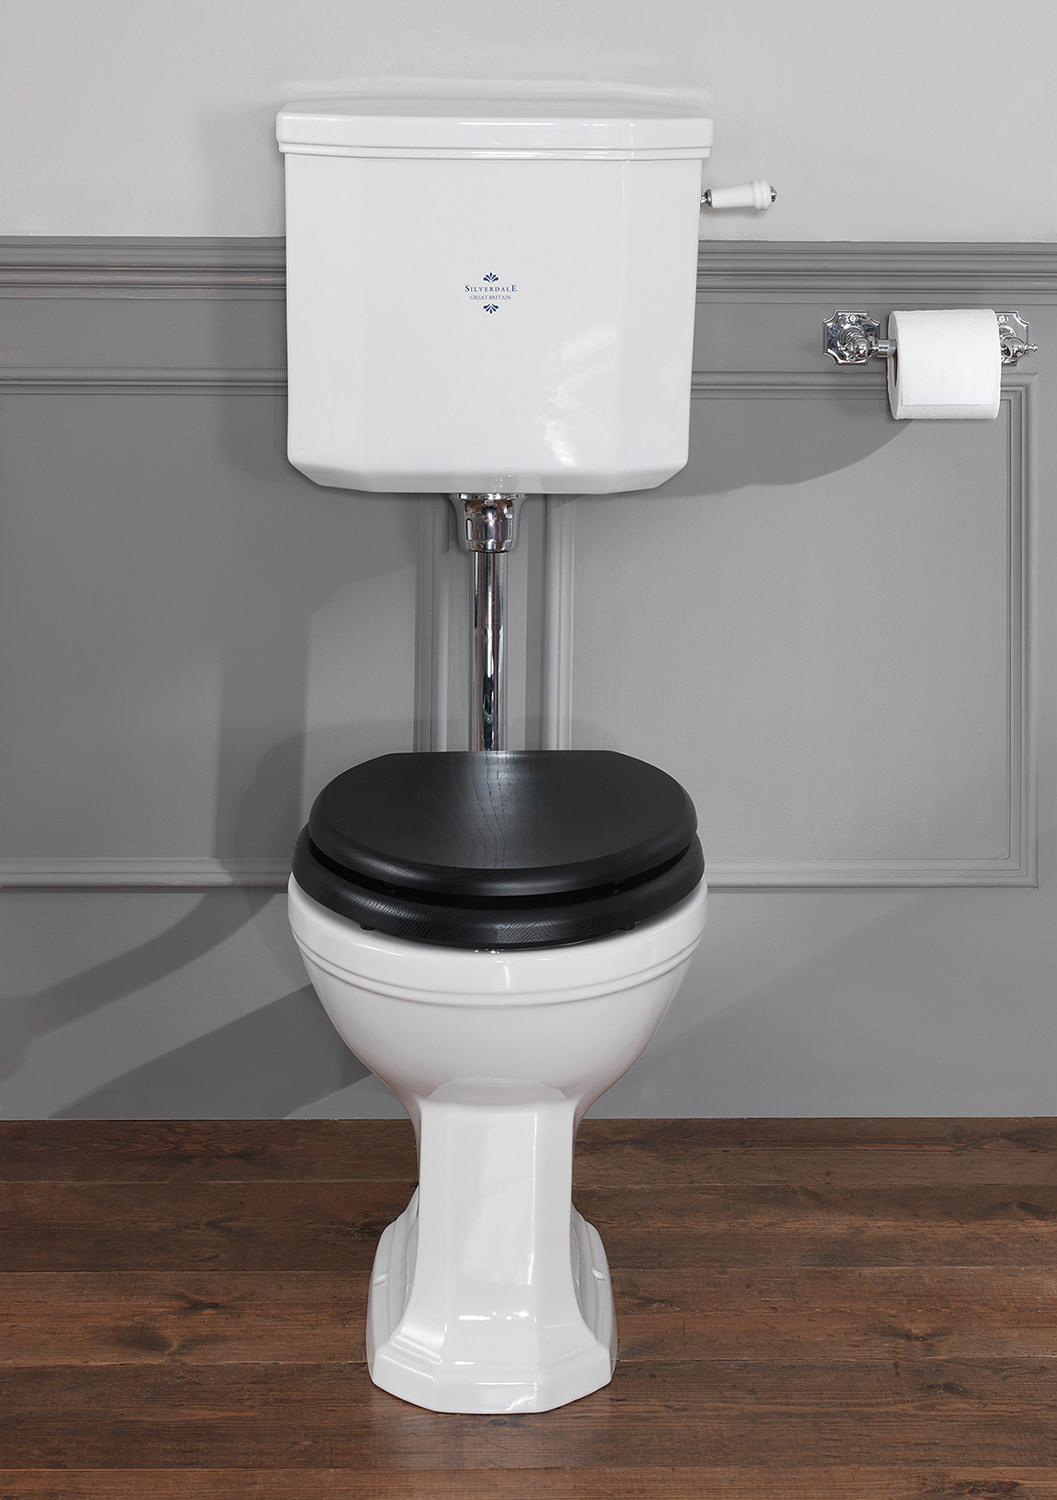 Bathroom cistern fittings - Silverdale Empire Low Level Wc Pan With Cistern And Fittings